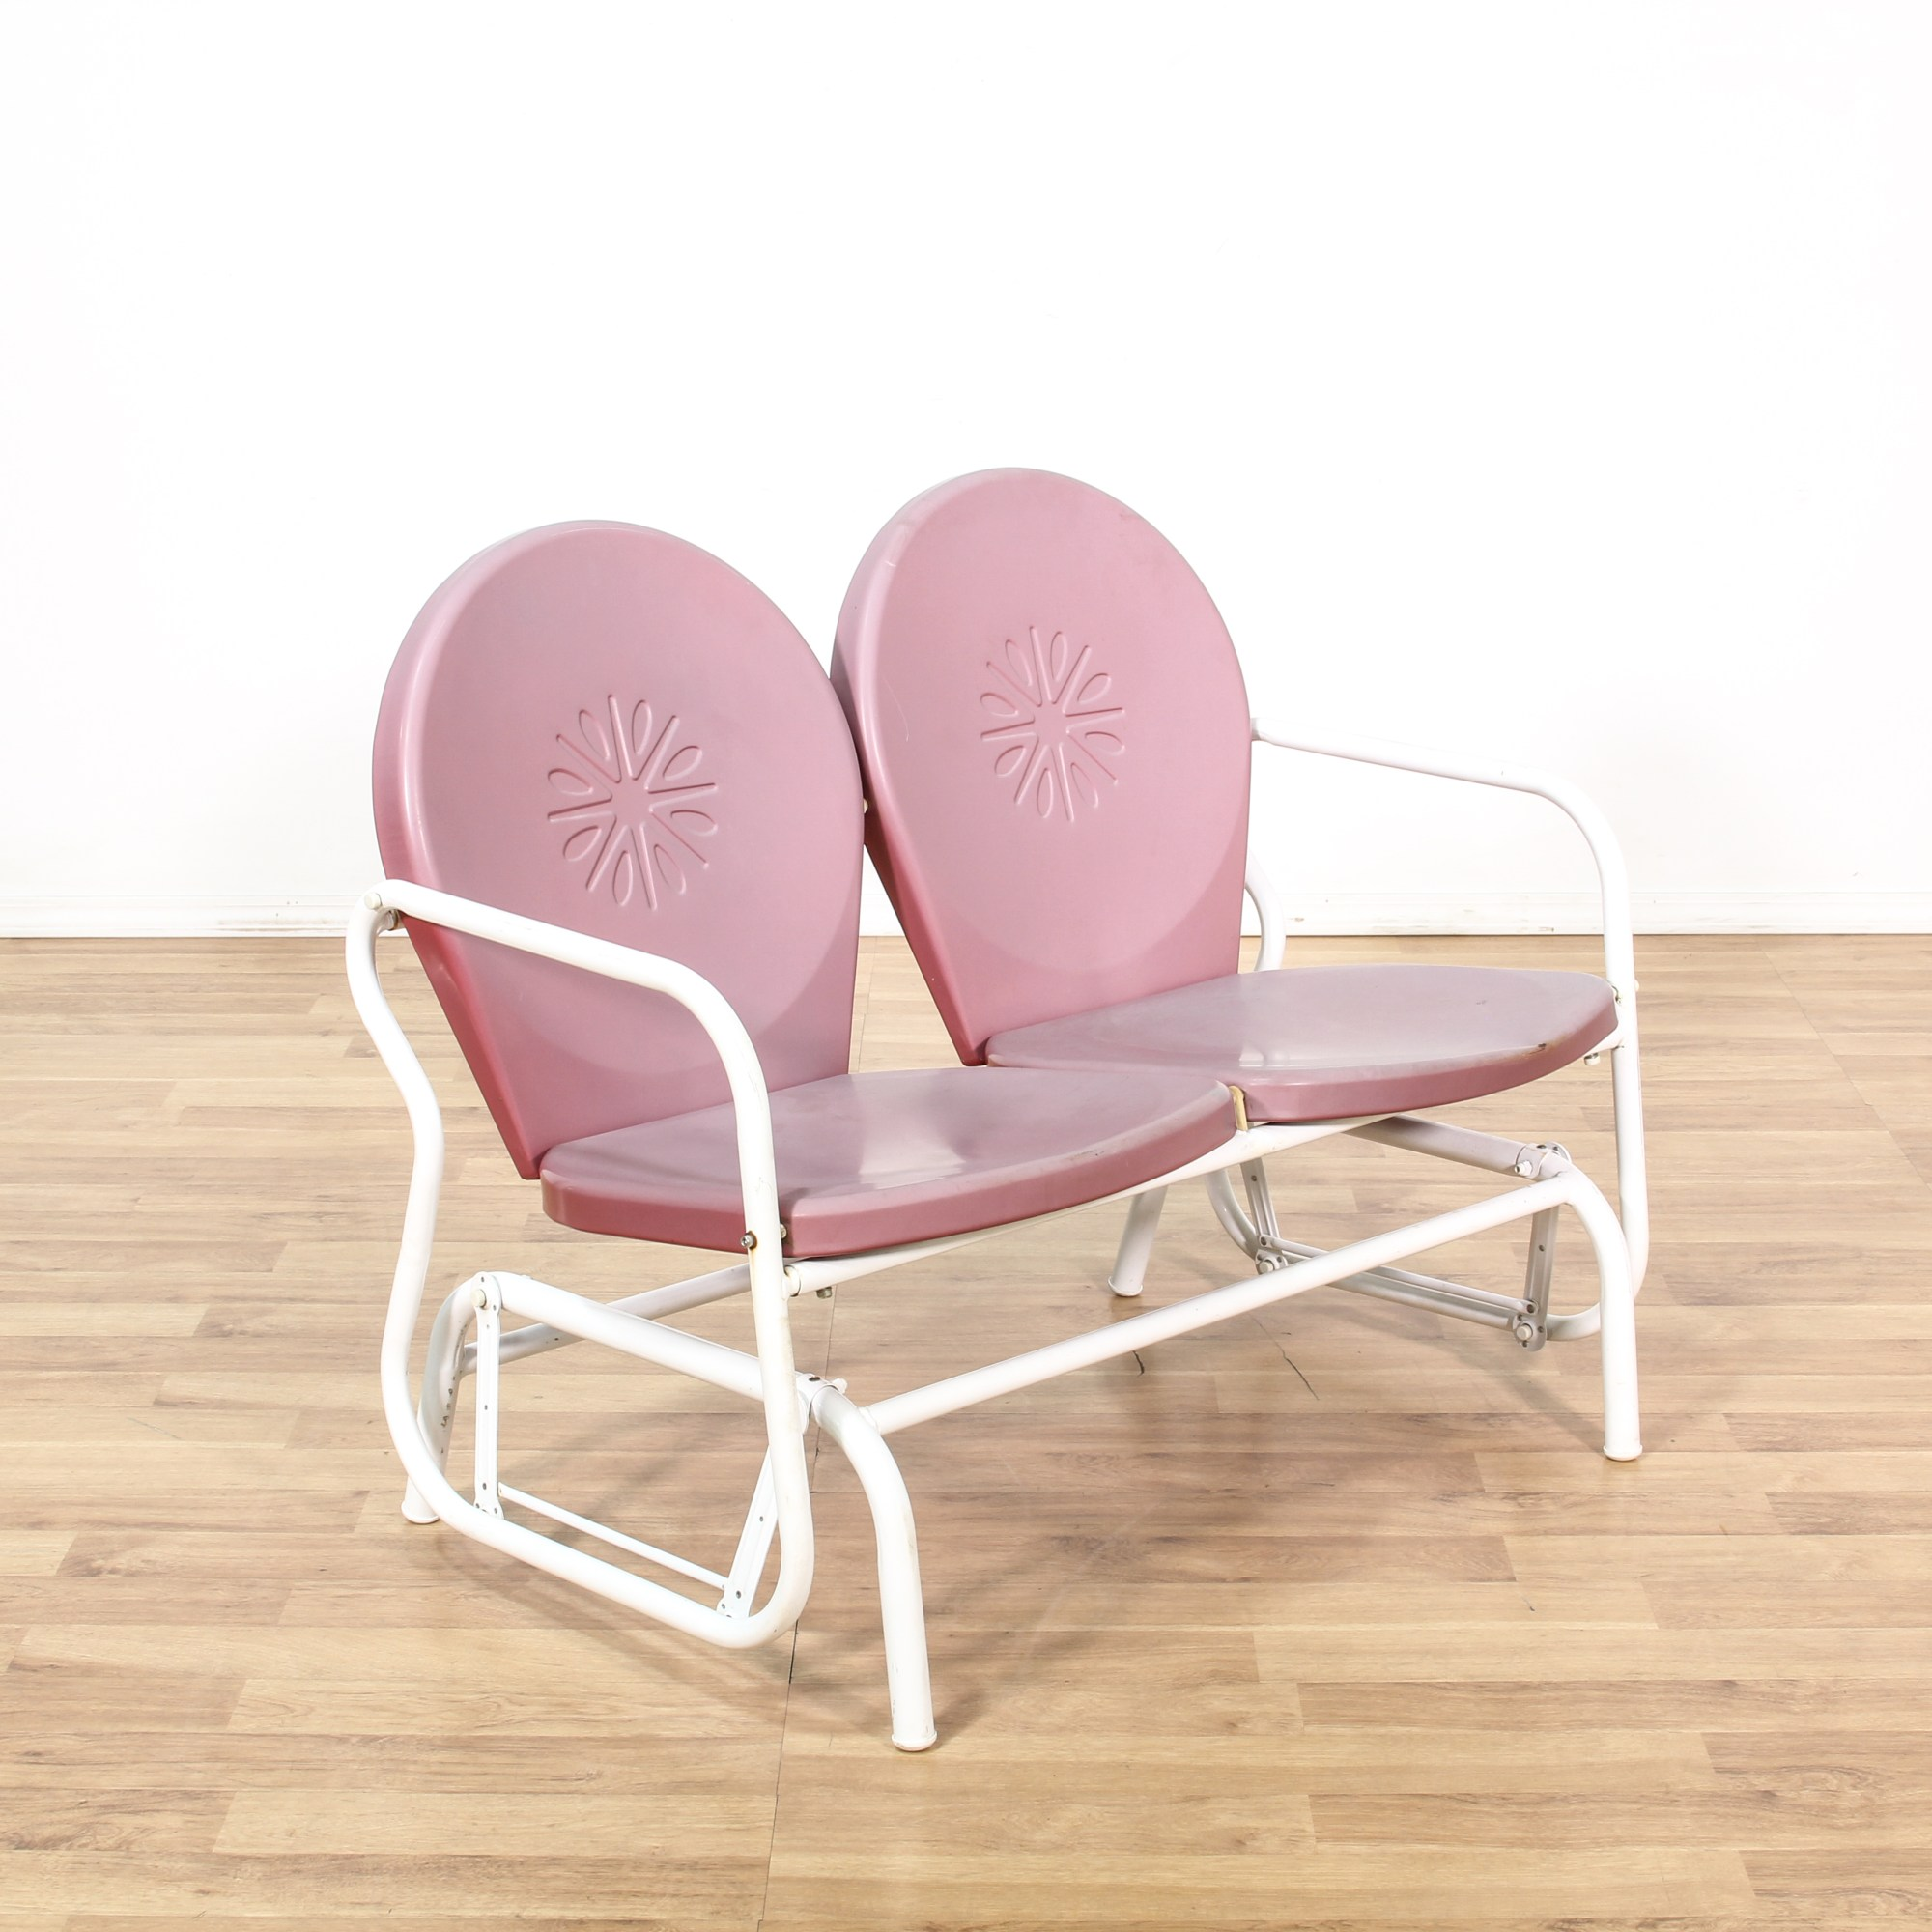 Retro Pink Metal Outdoor Double Lawn Glider Chair